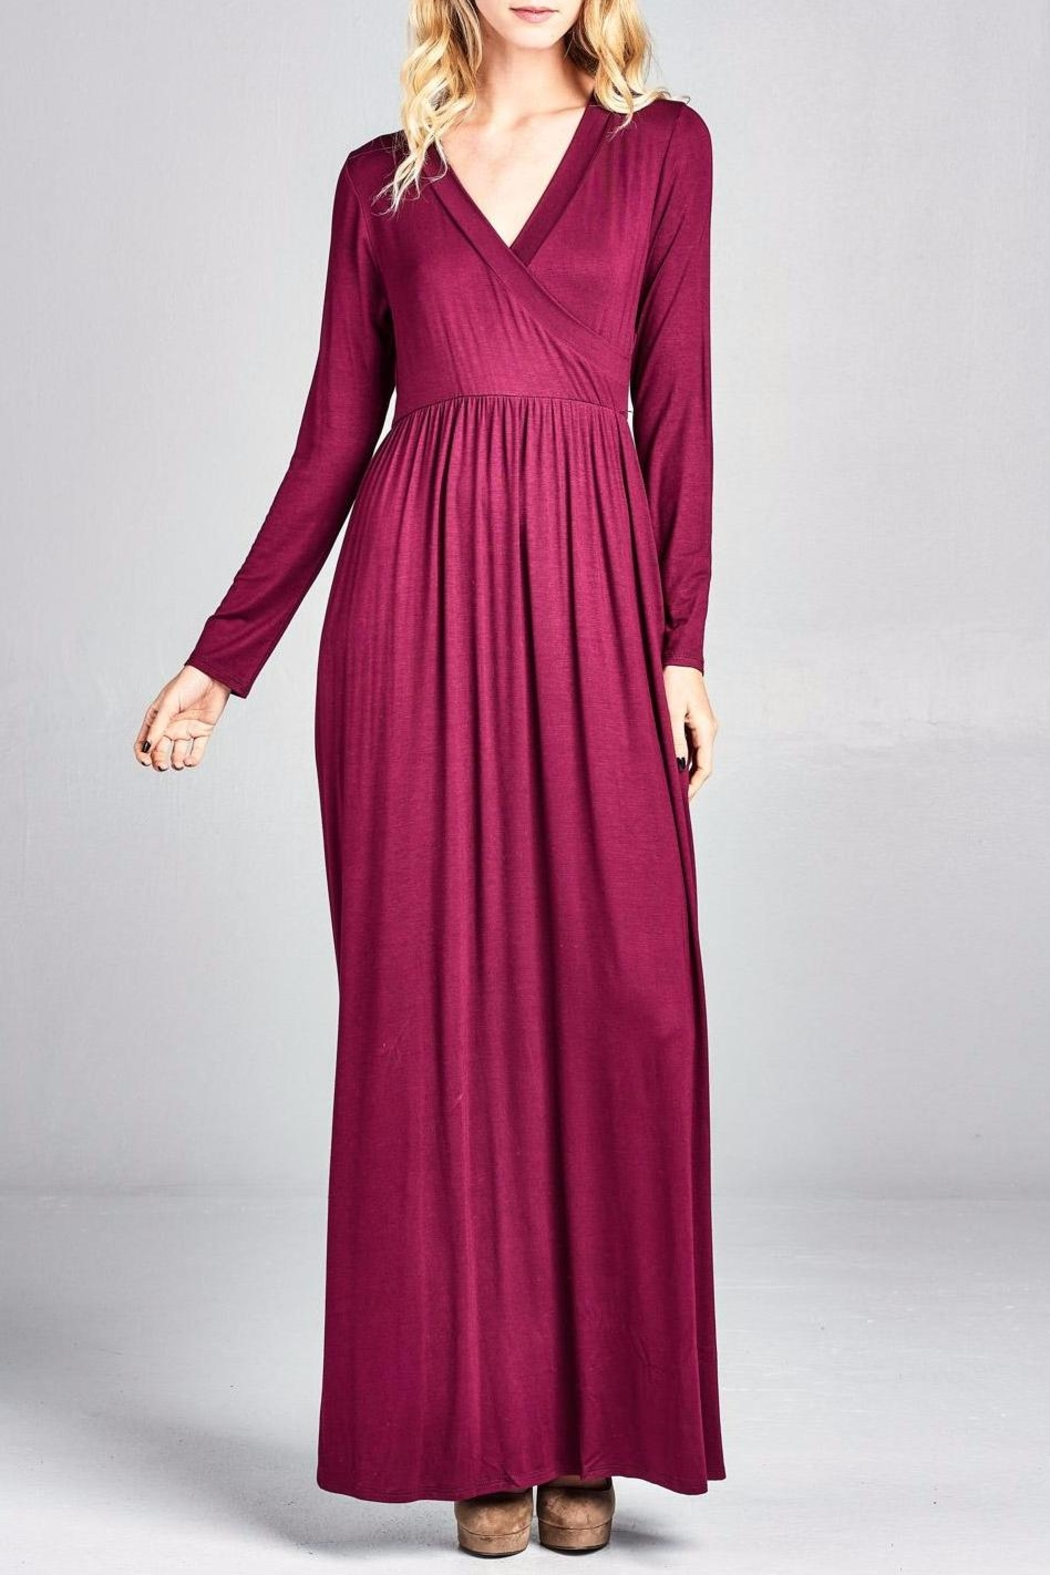 Nu Label Maxi-Dress With Pockets - Side Cropped Image